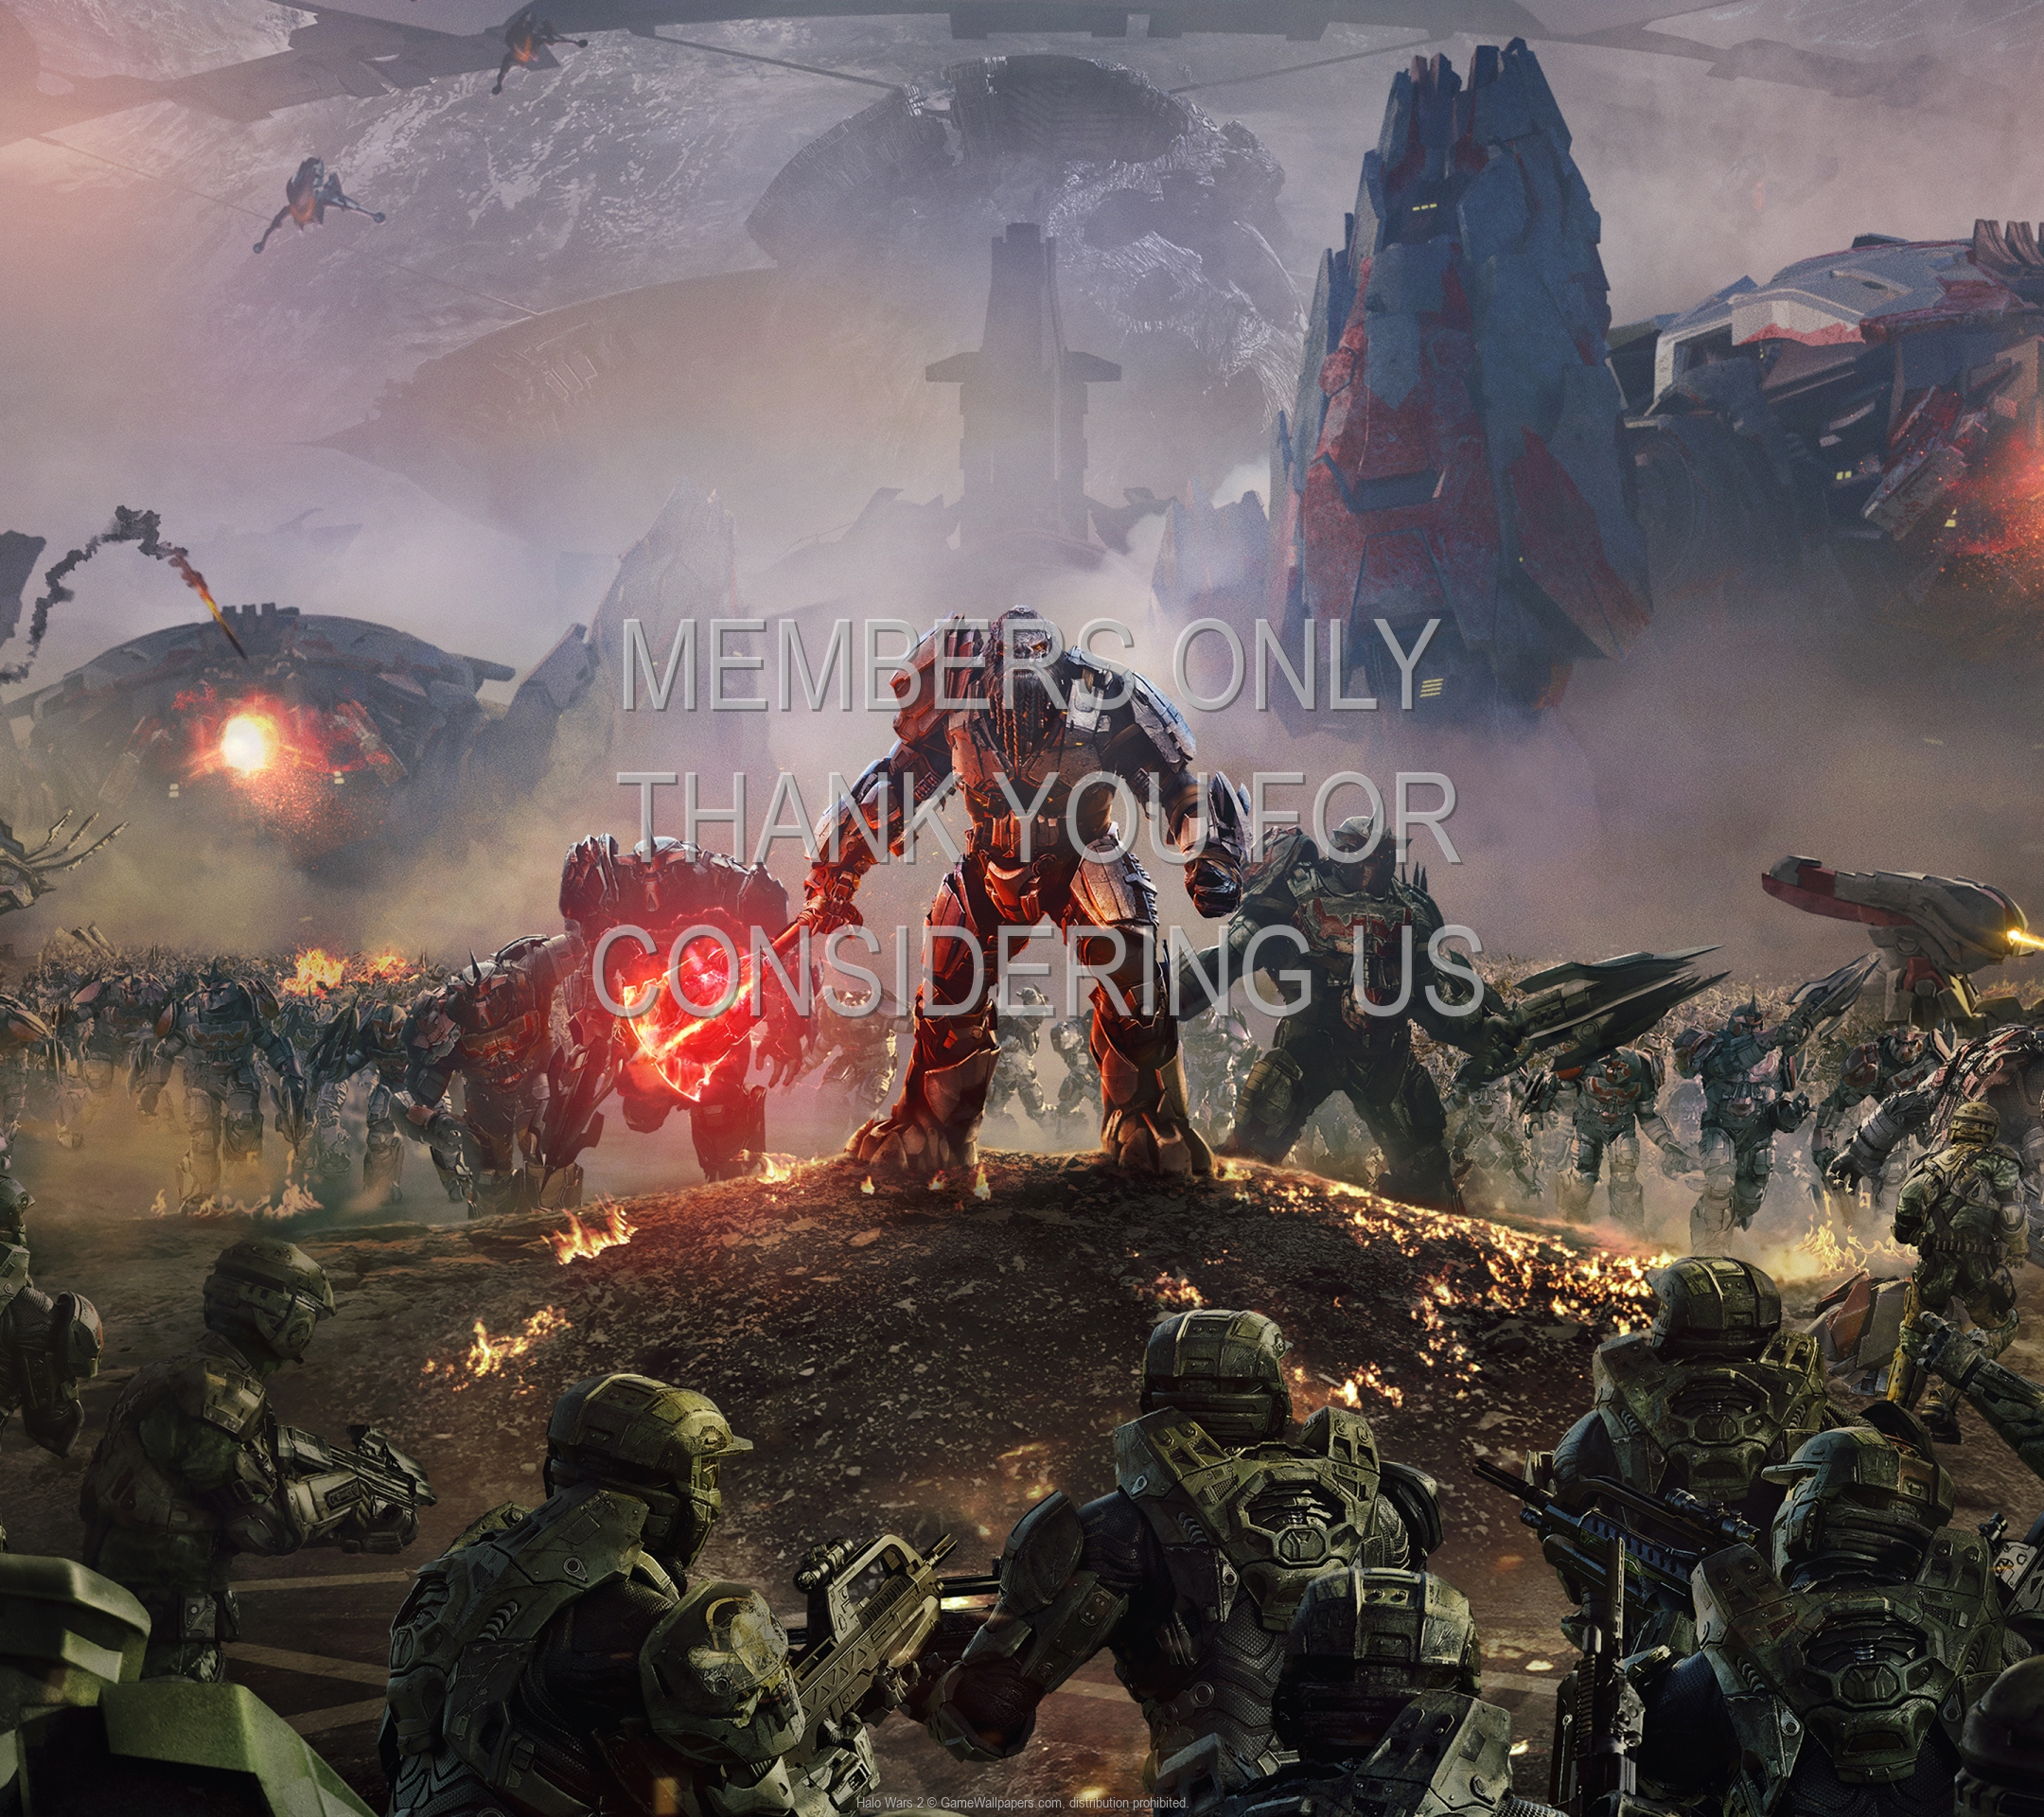 Halo Wars 2 1920x1080 Mobile wallpaper or background 01